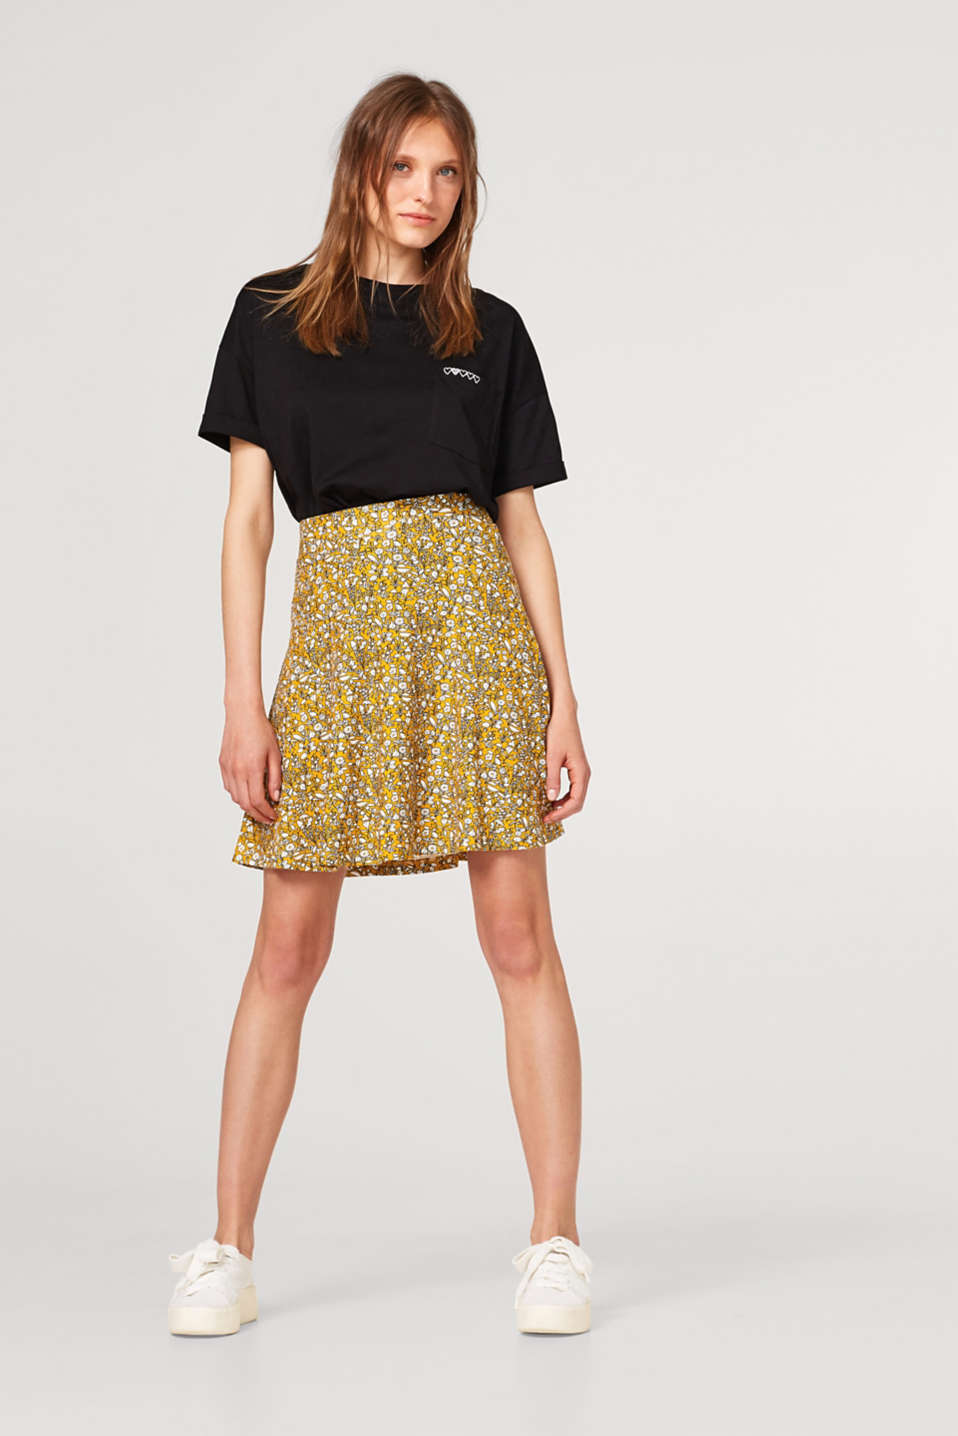 Swirling jersey skirt in an A-line